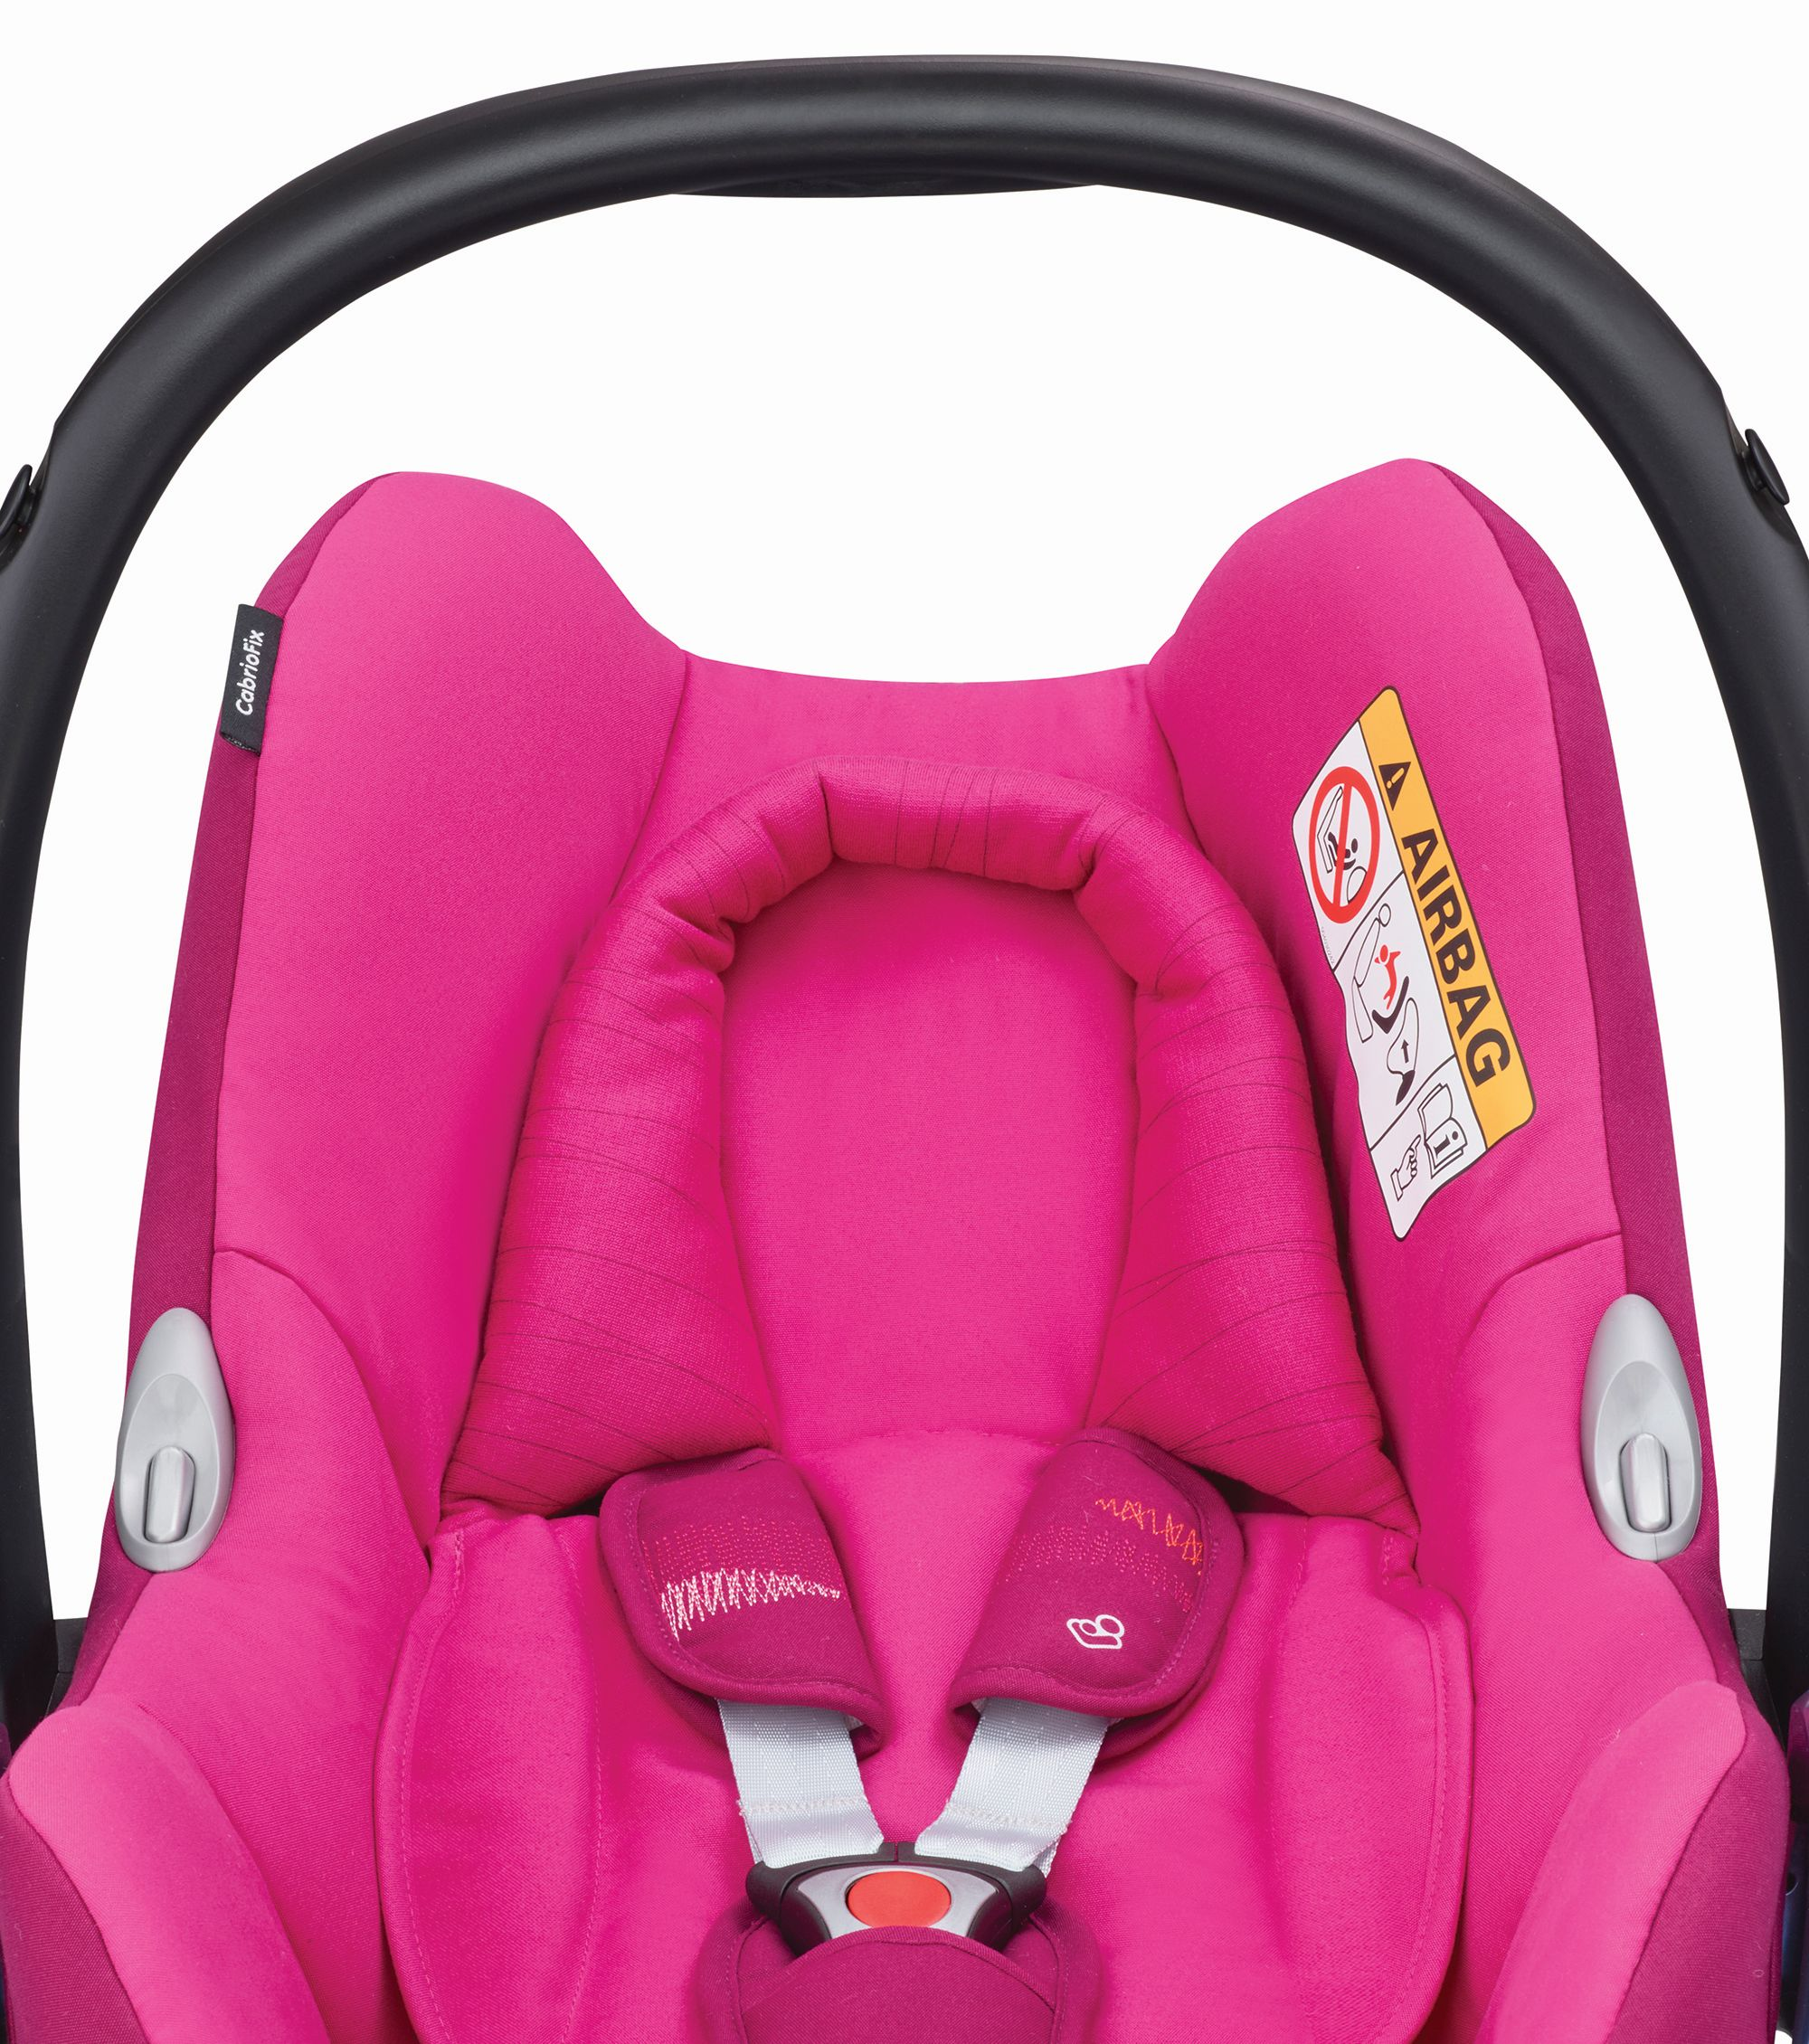 Maxi Cosi Infant Car Seat CabrioFix Frequency Pink 2018